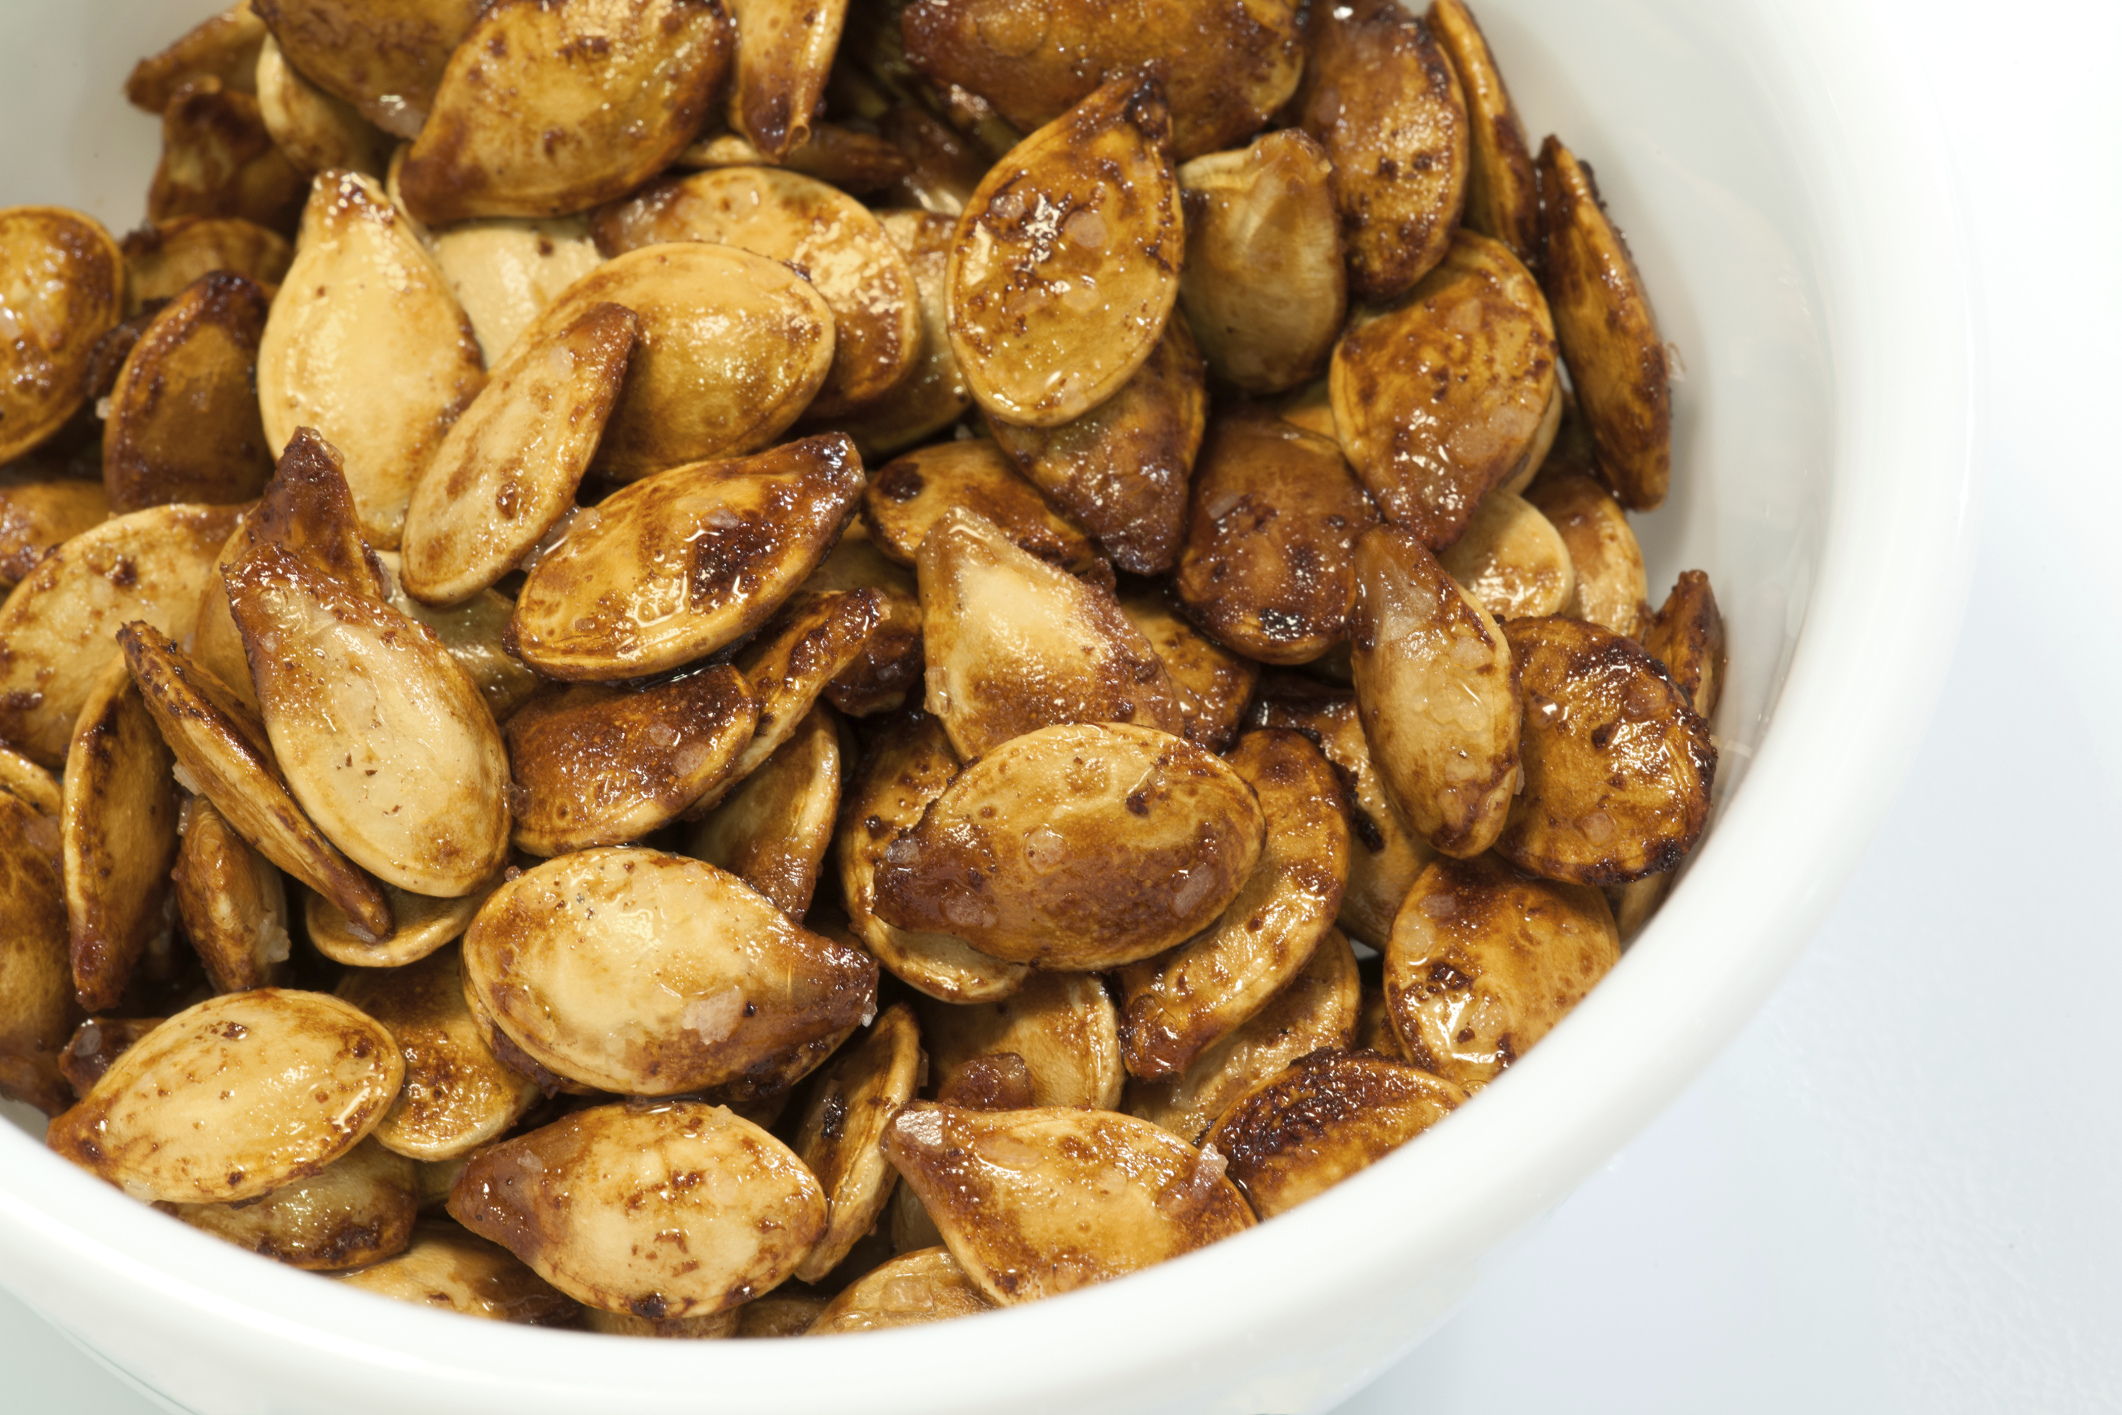 Close-up of Roasted Pumpkin Seeds in White Bowl, Neutral Background